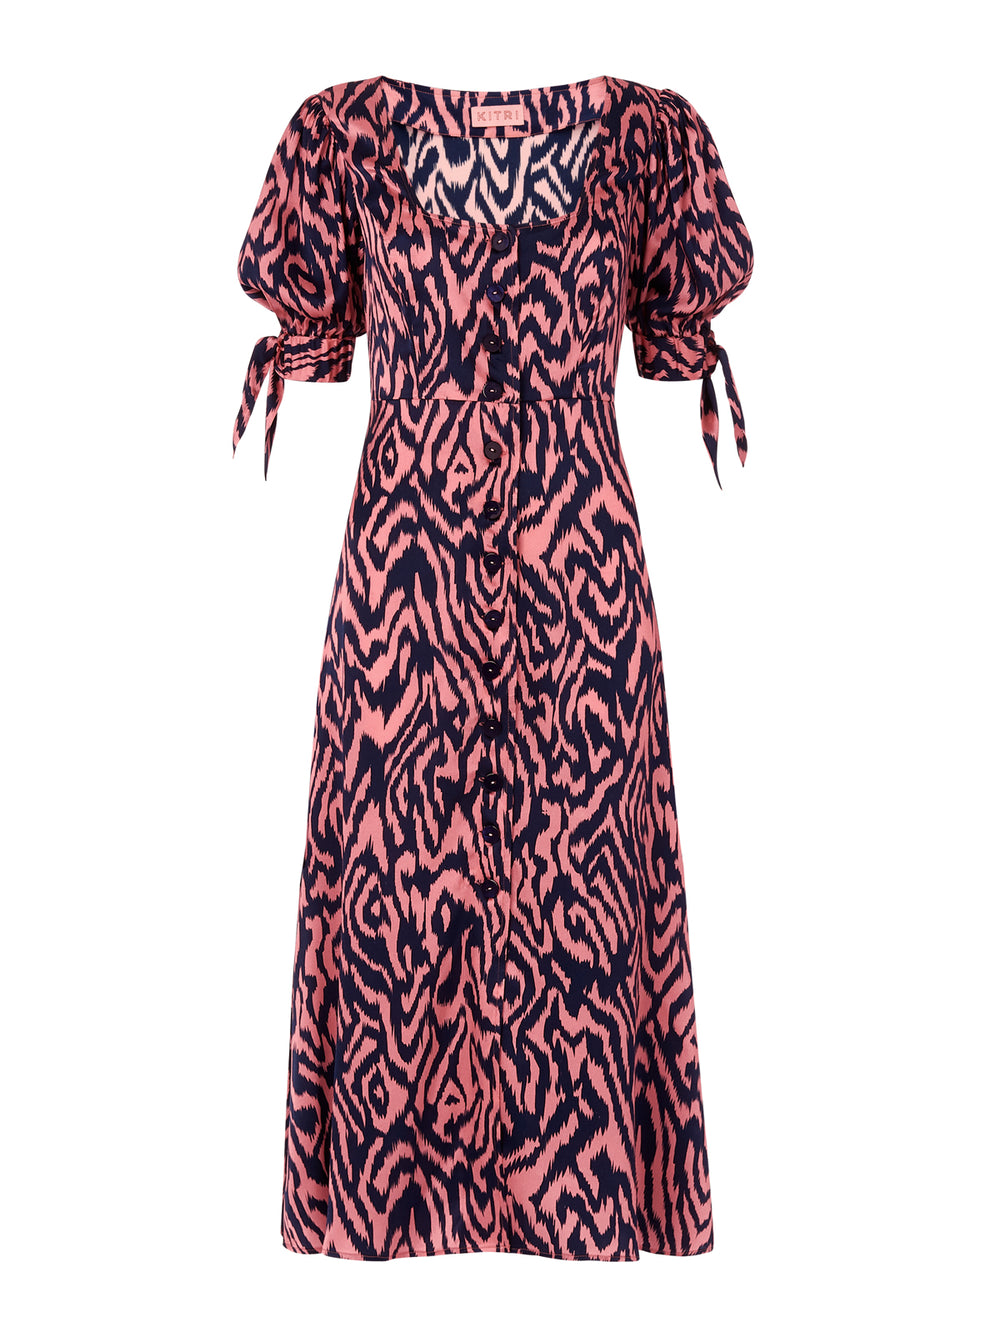 Lenora Pink Animal Print Silk Midi Dress by KITRI Studio